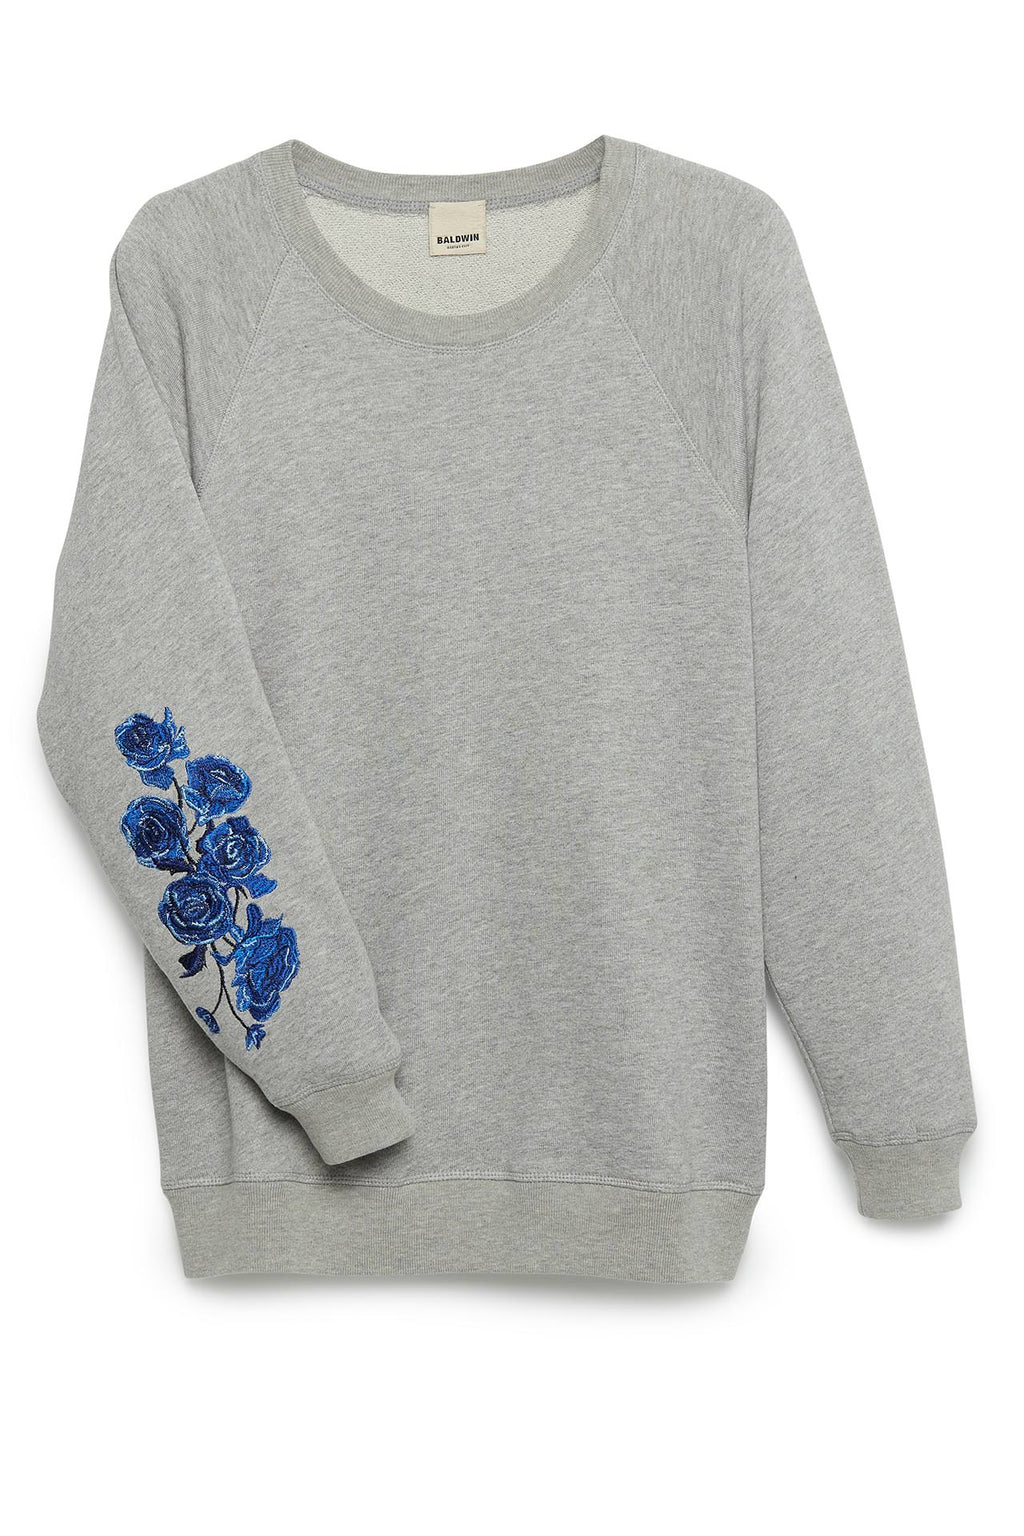 The Taylor Sweatshirt in Heather Grey with Embroidery